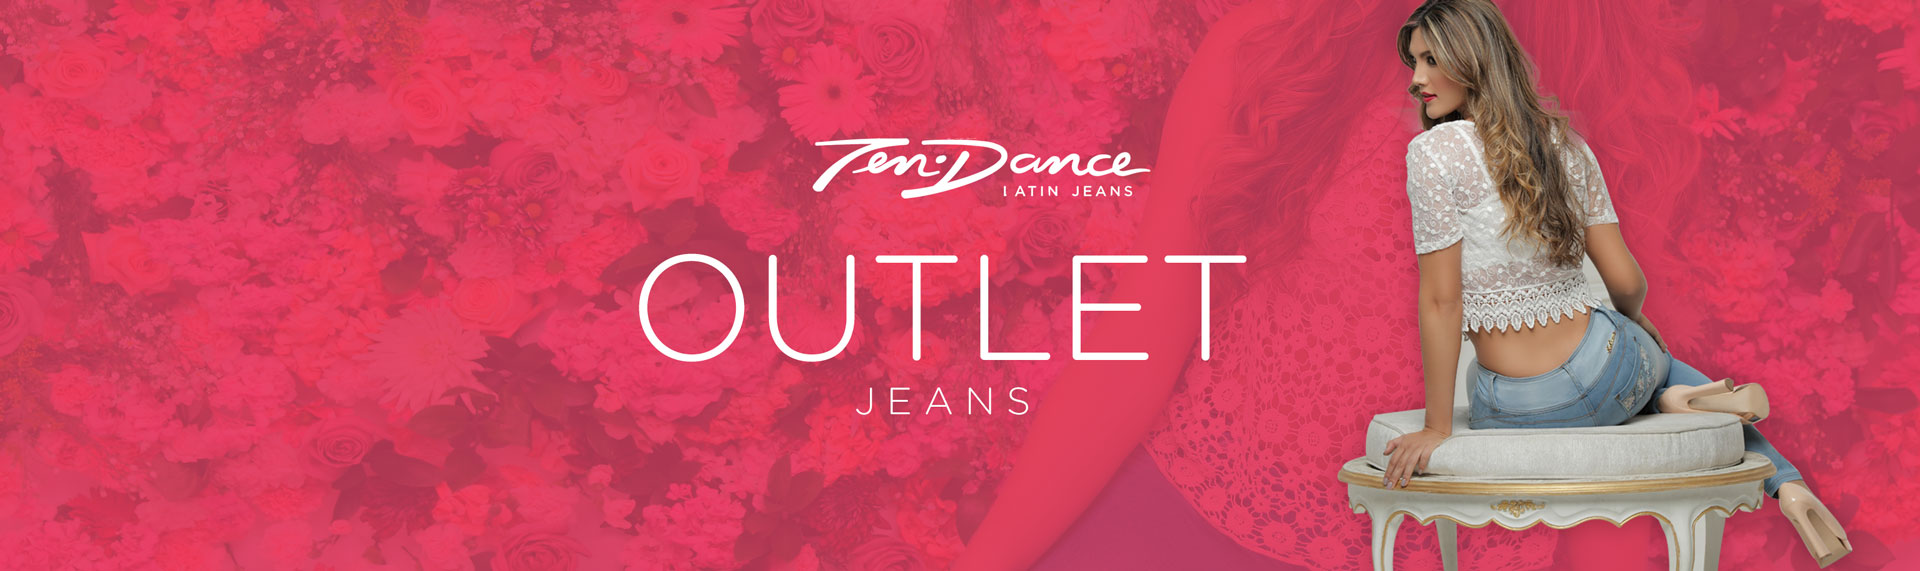 banner-jeans-colombianos-outlet-1